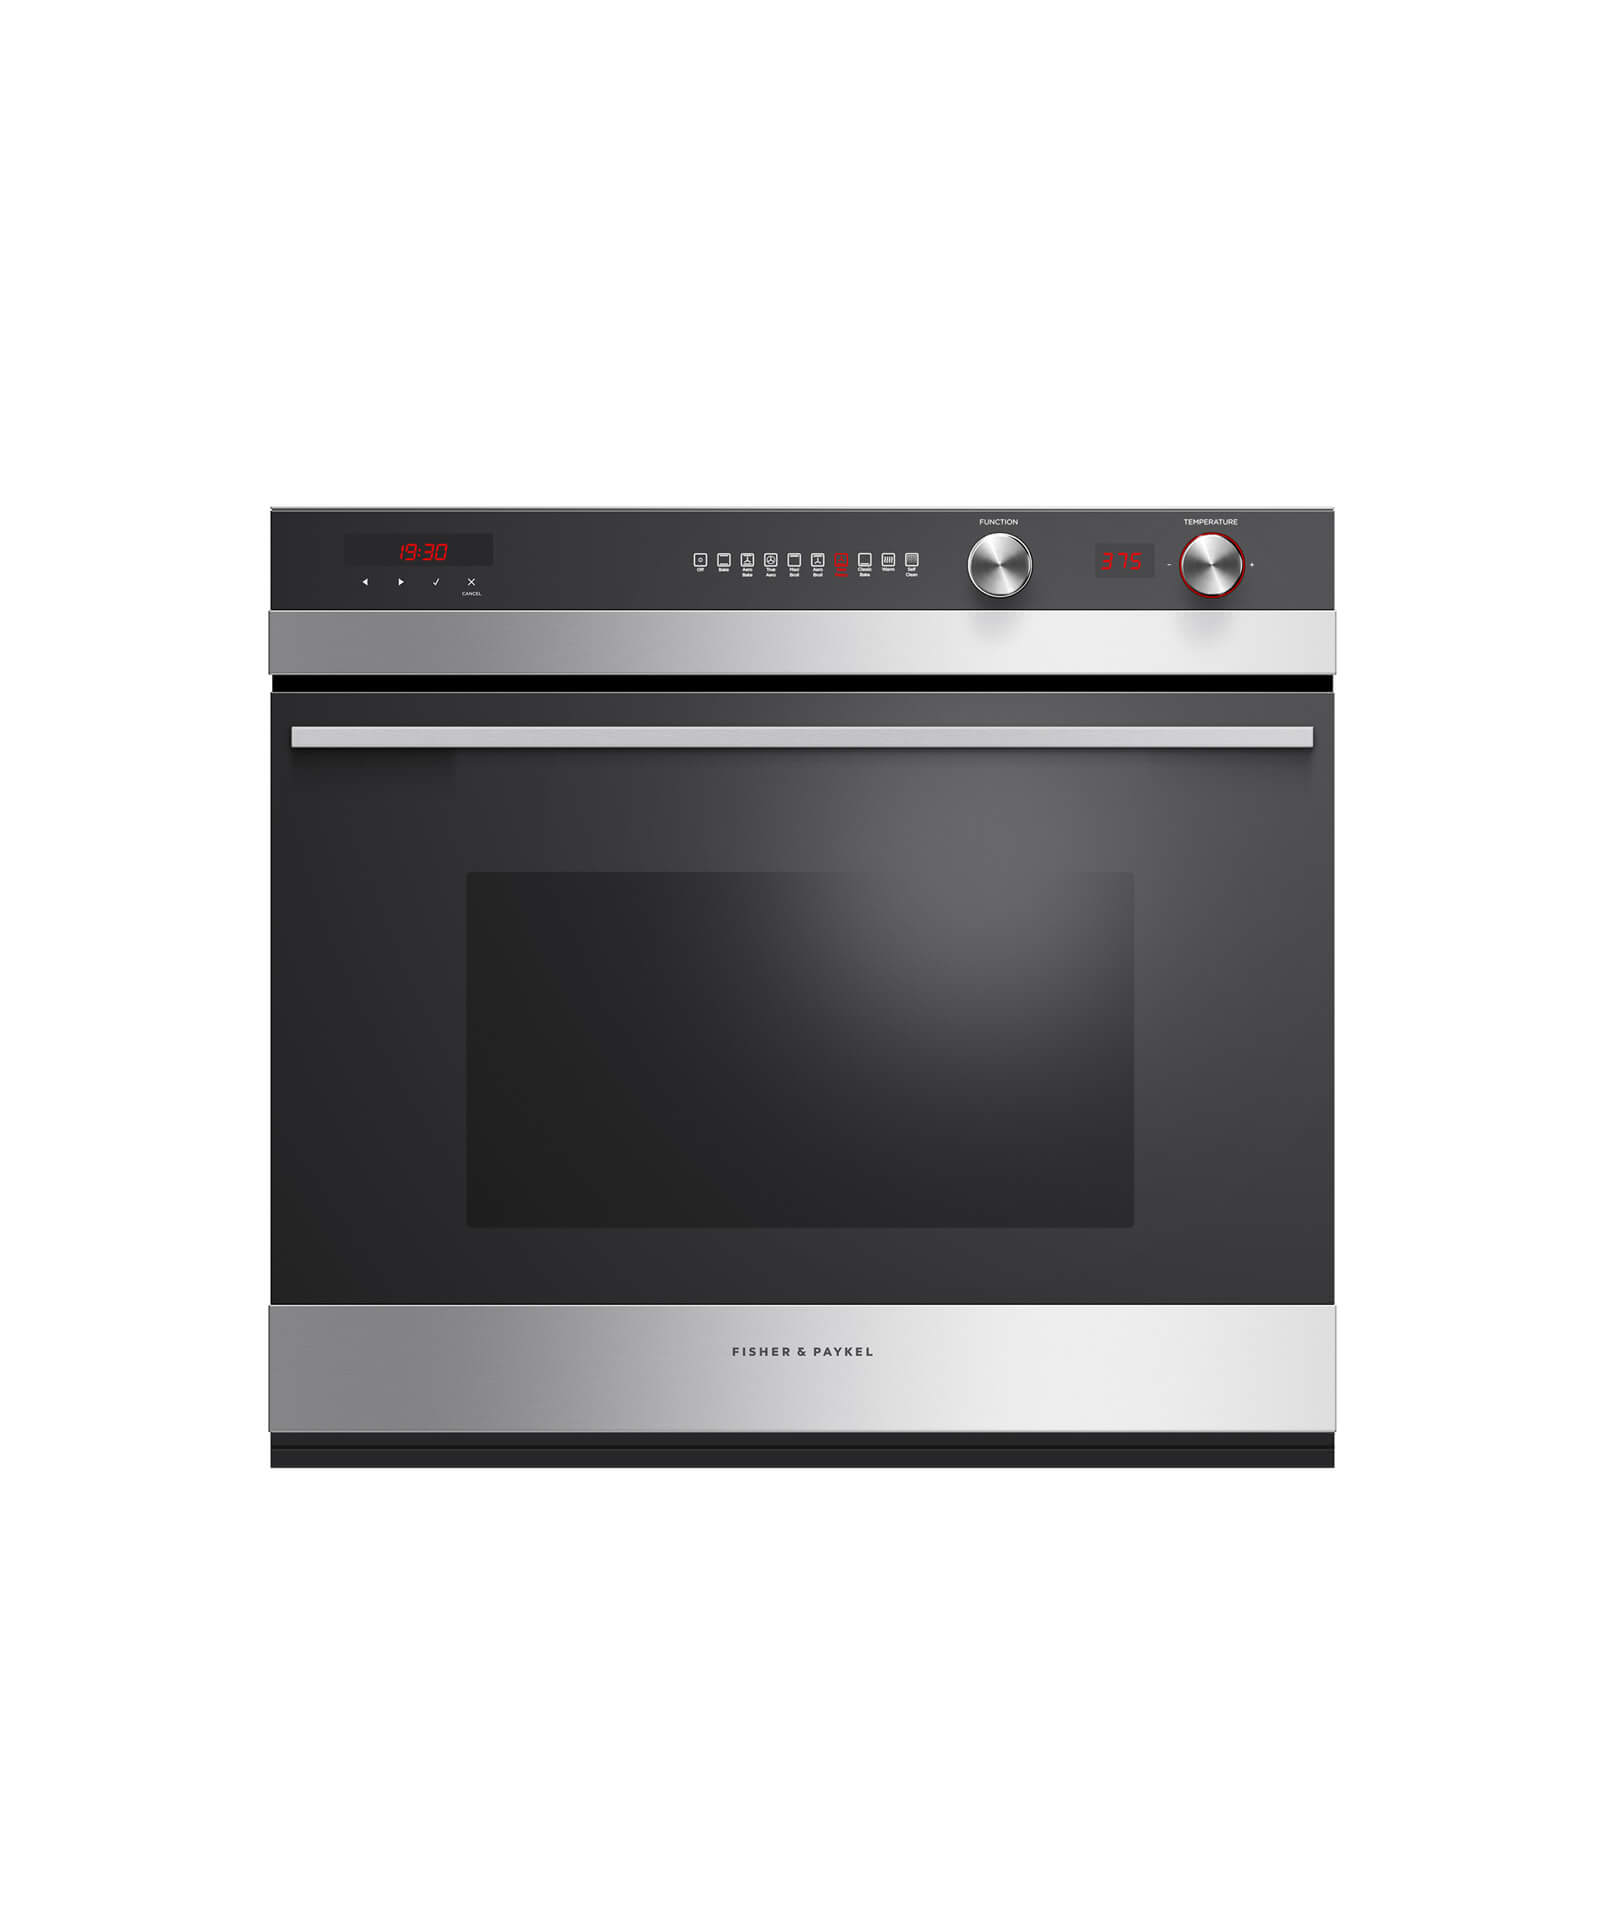 """Fisher and Paykel Built-in Oven, 30"""" 4.1 cu ft, 9 Function"""